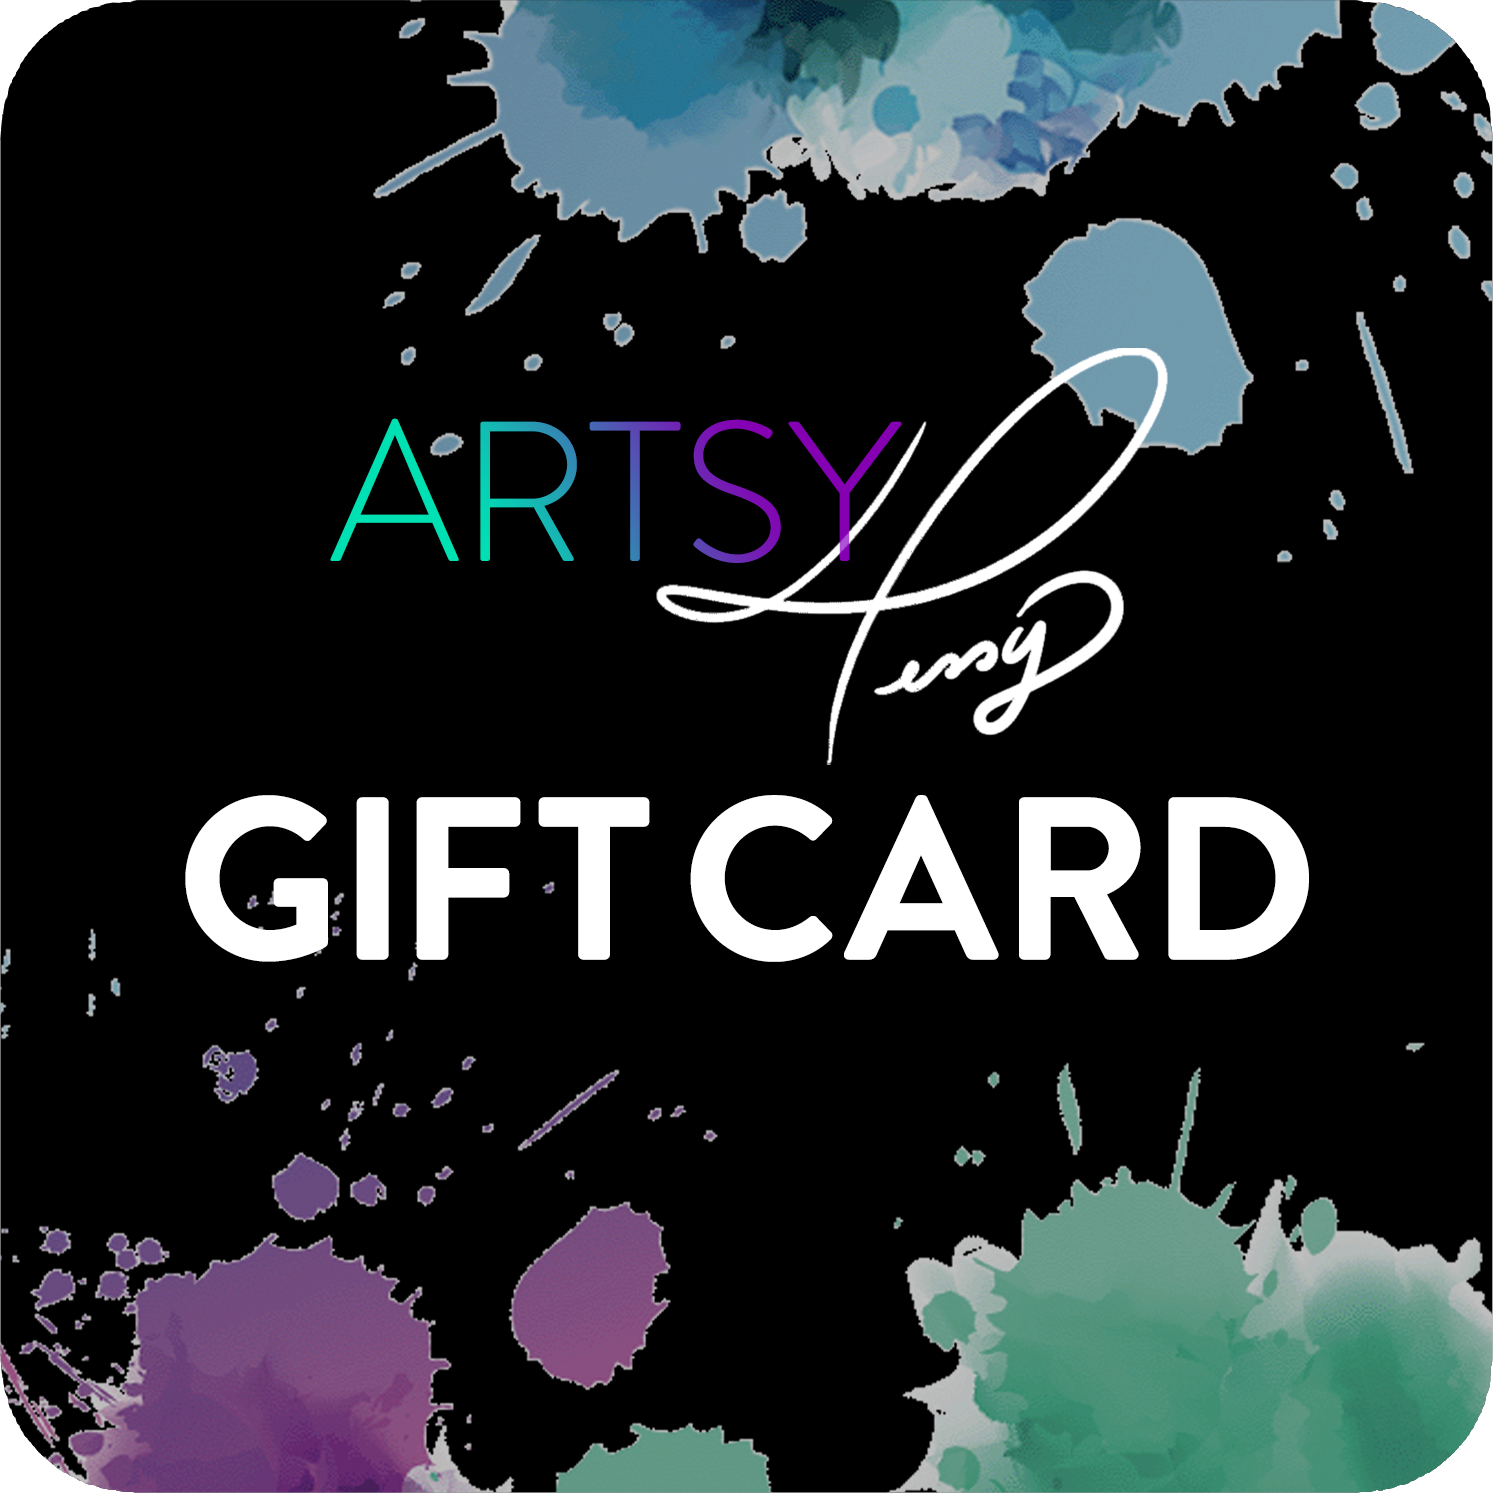 giftcard_600x600.png